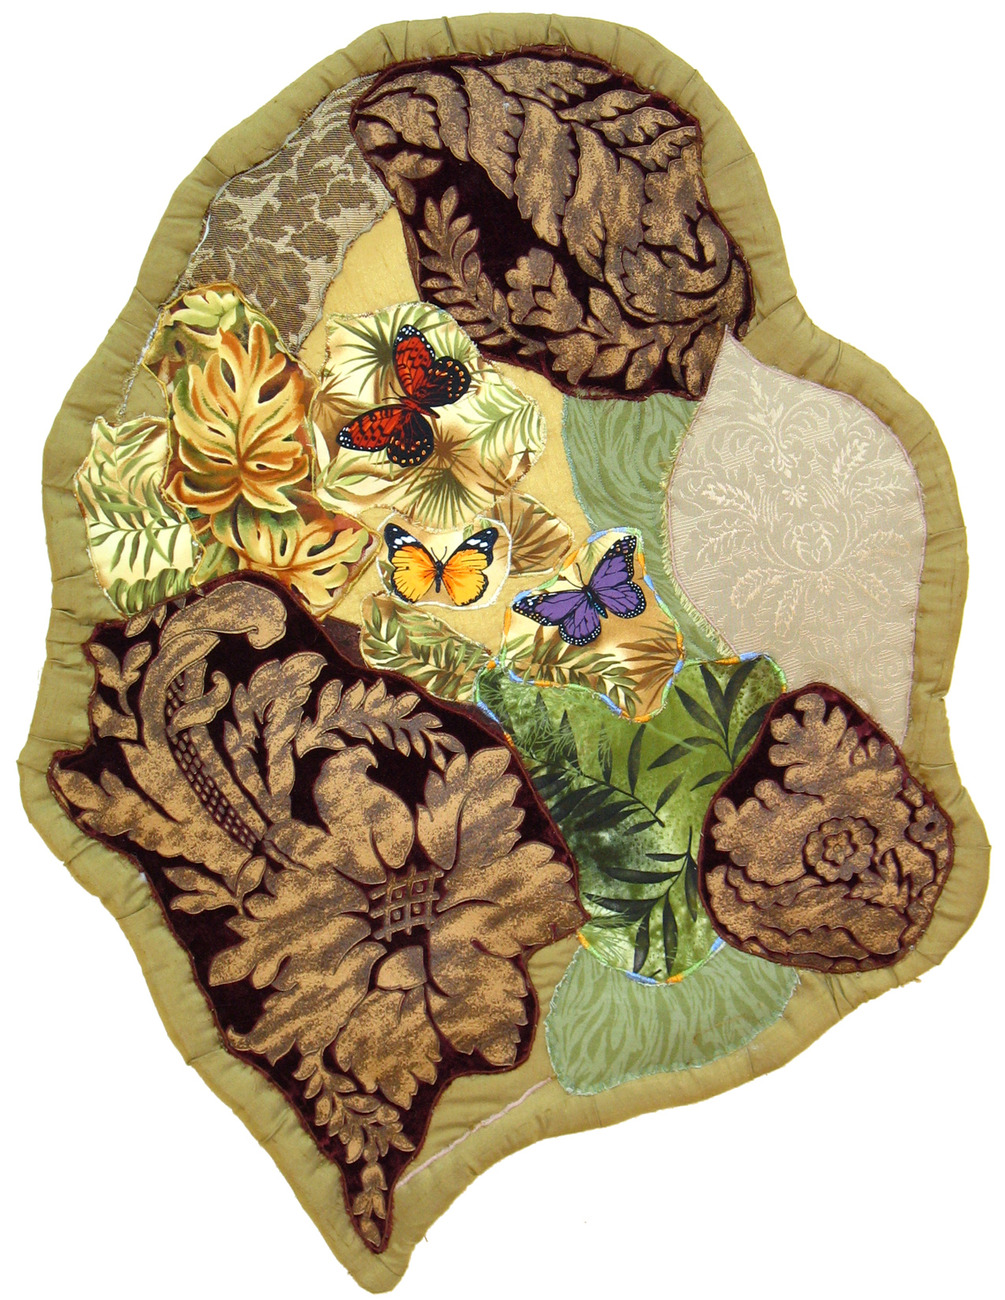 Primary image for Butterflies Ascending: Quilted Art Wall Hanging